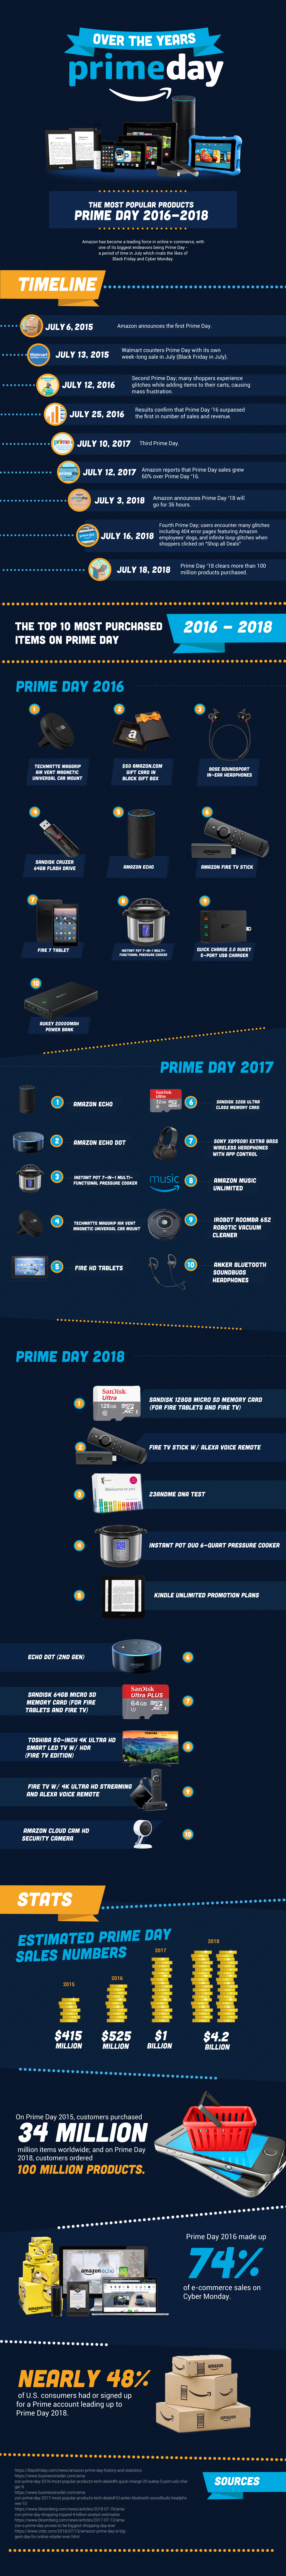 The Most Popular Prime Day Products Over the Years